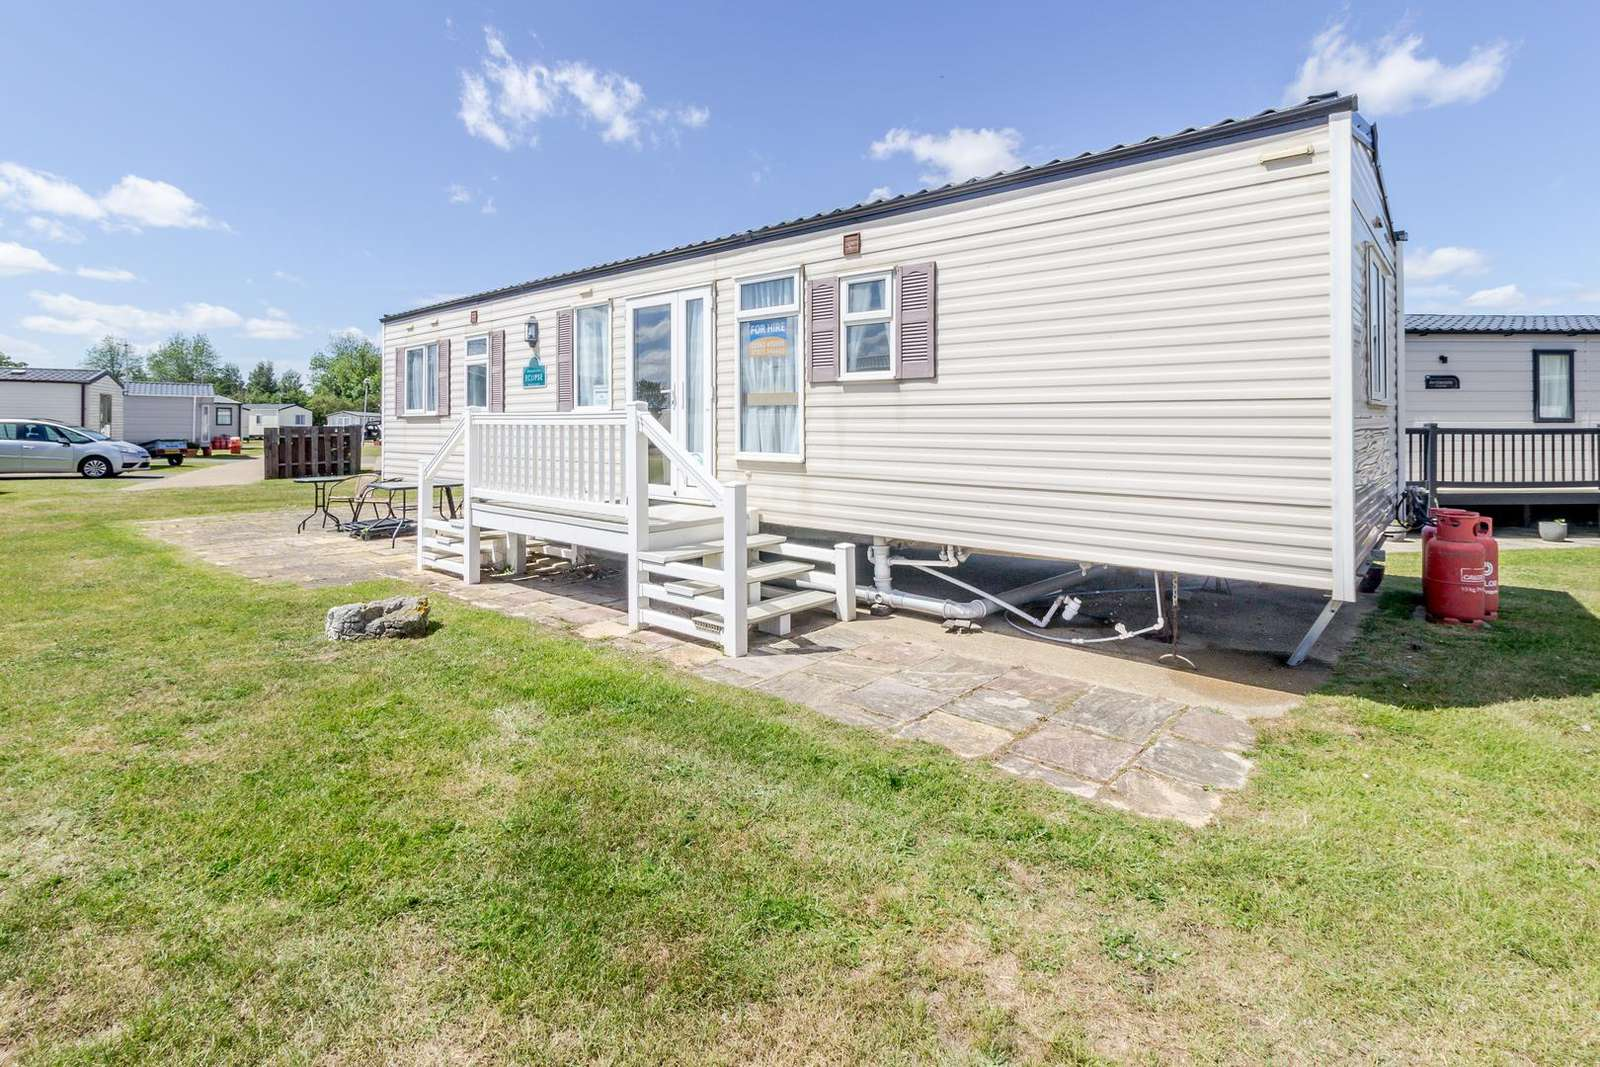 80015W – Waterways area, 3 bed, 8 berth caravan close to beach access. Ruby rated. - property